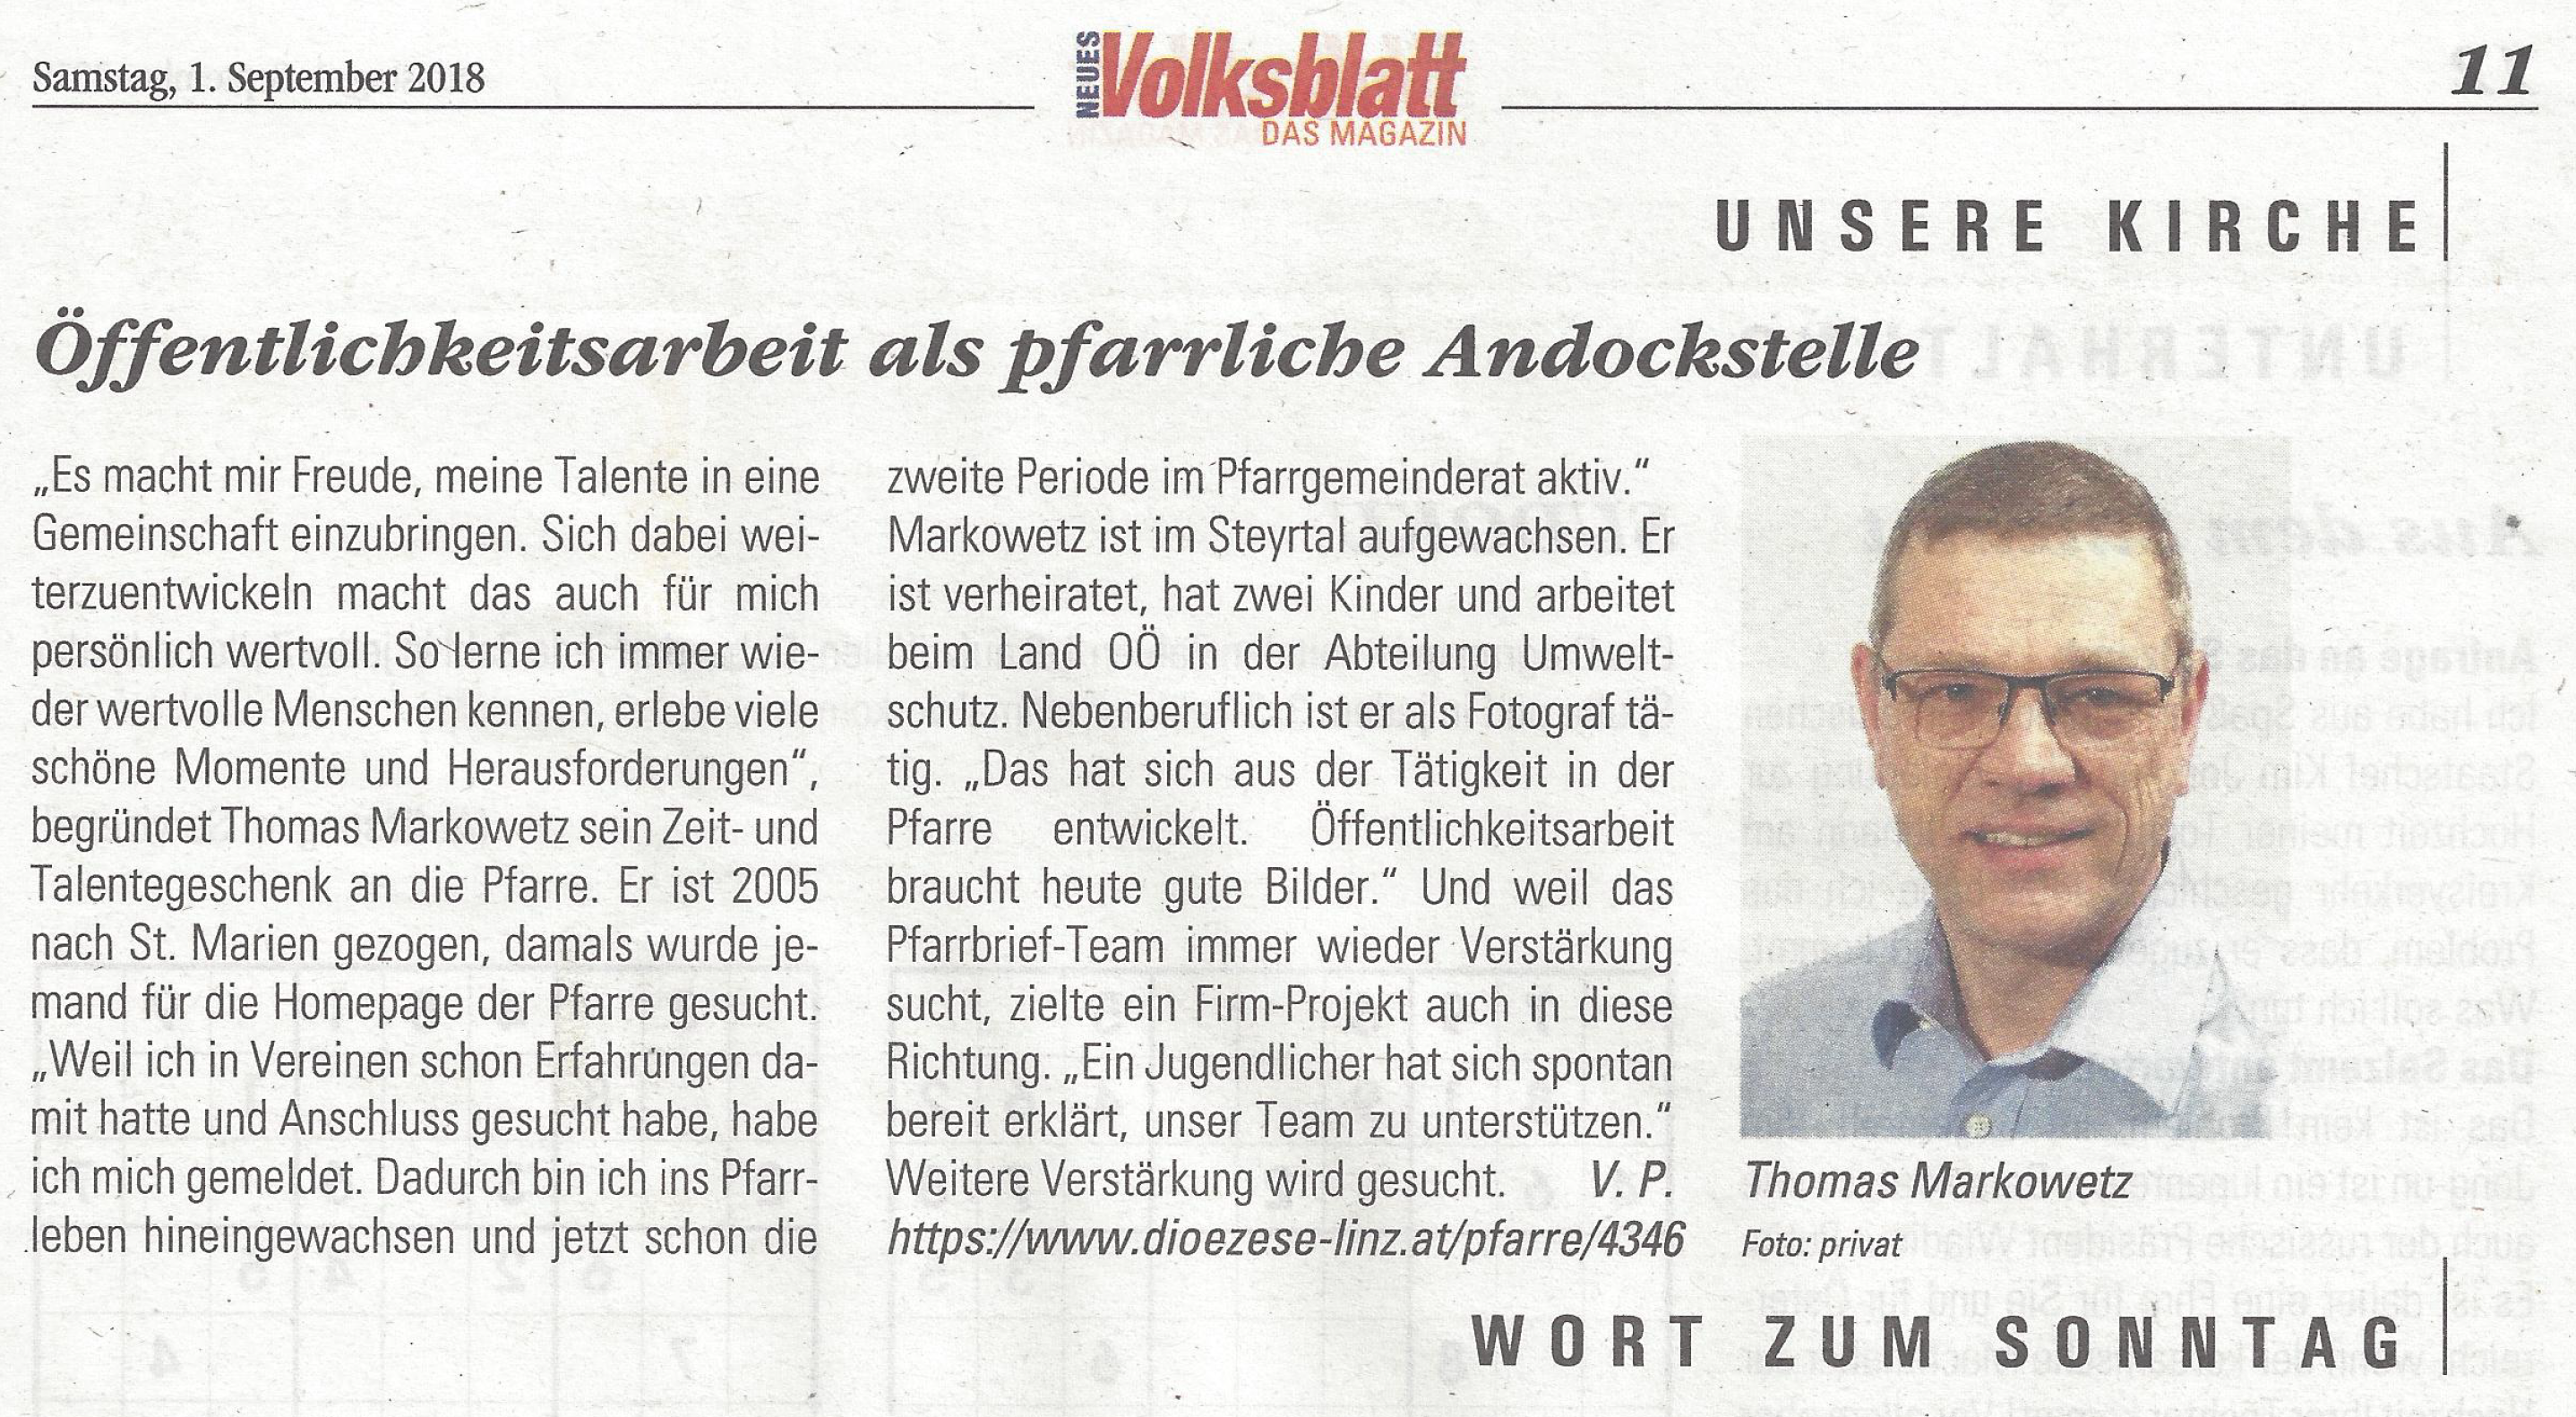 Interview im Volksblatt am 1.9.2018